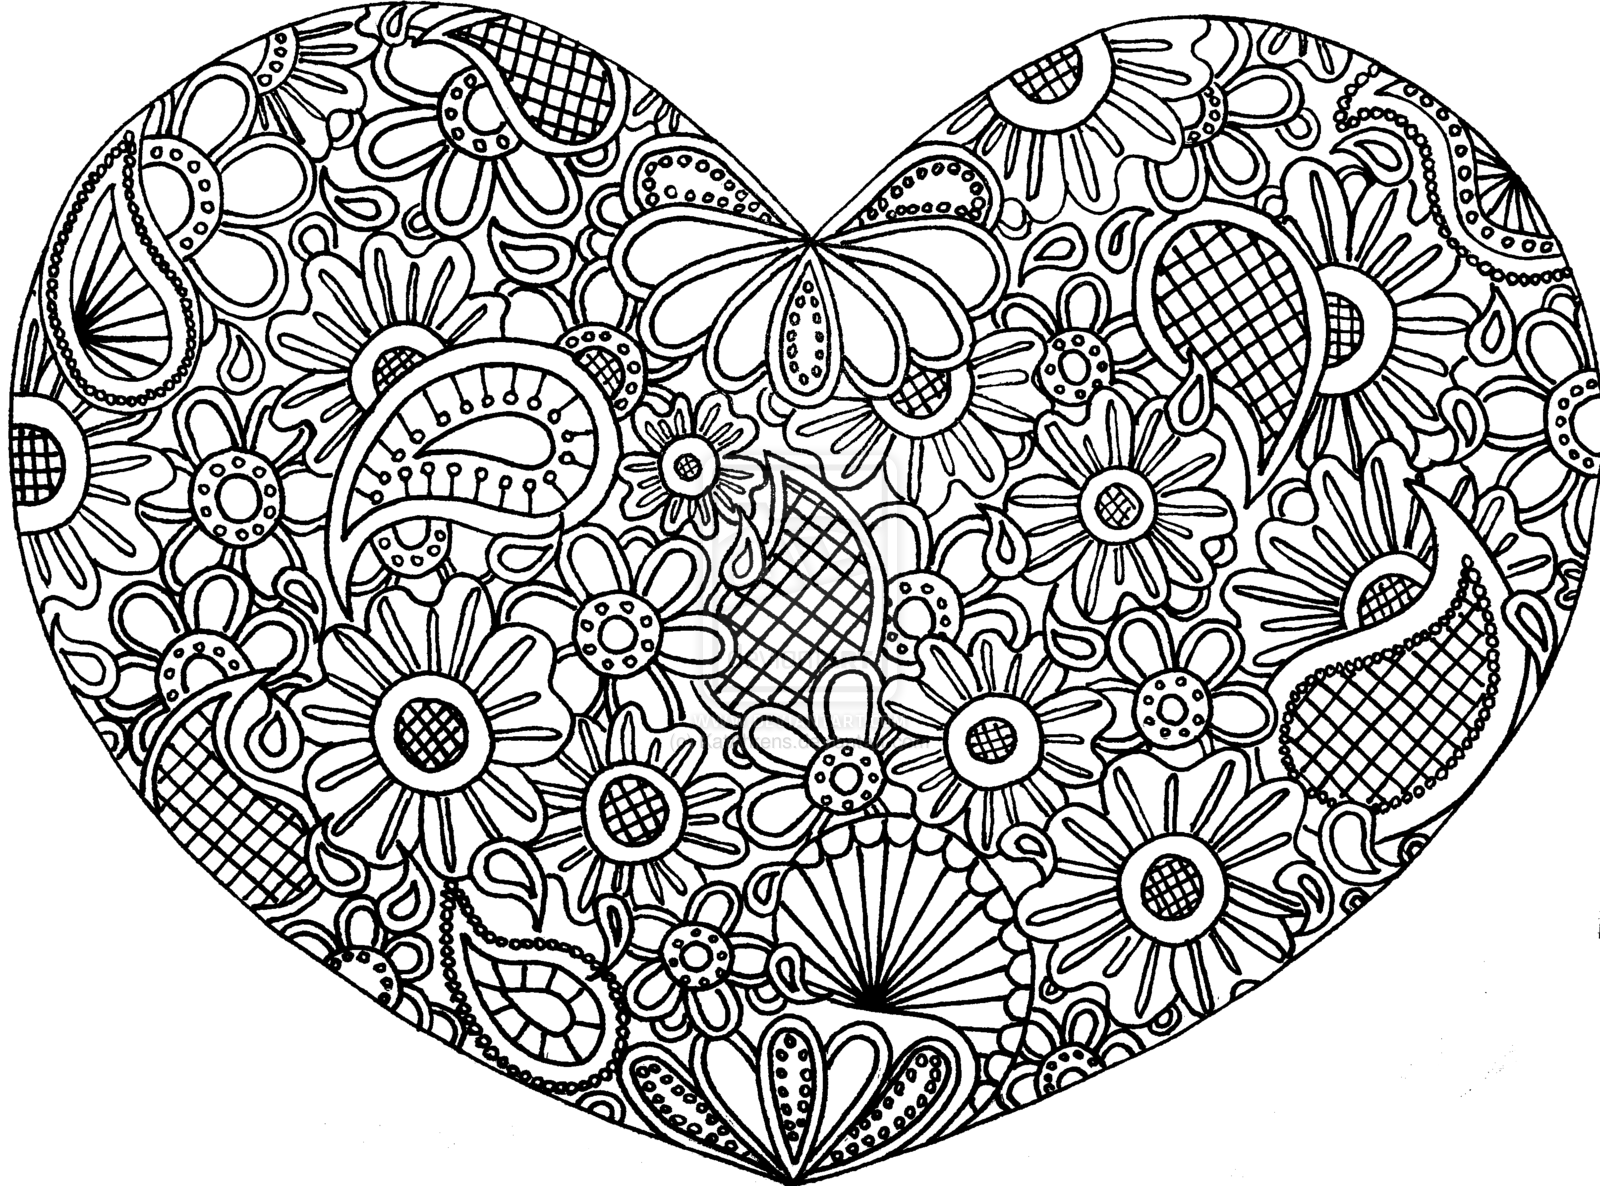 Best Heart Design Coloring Pages Pictures - Kids, Children and Adult ...